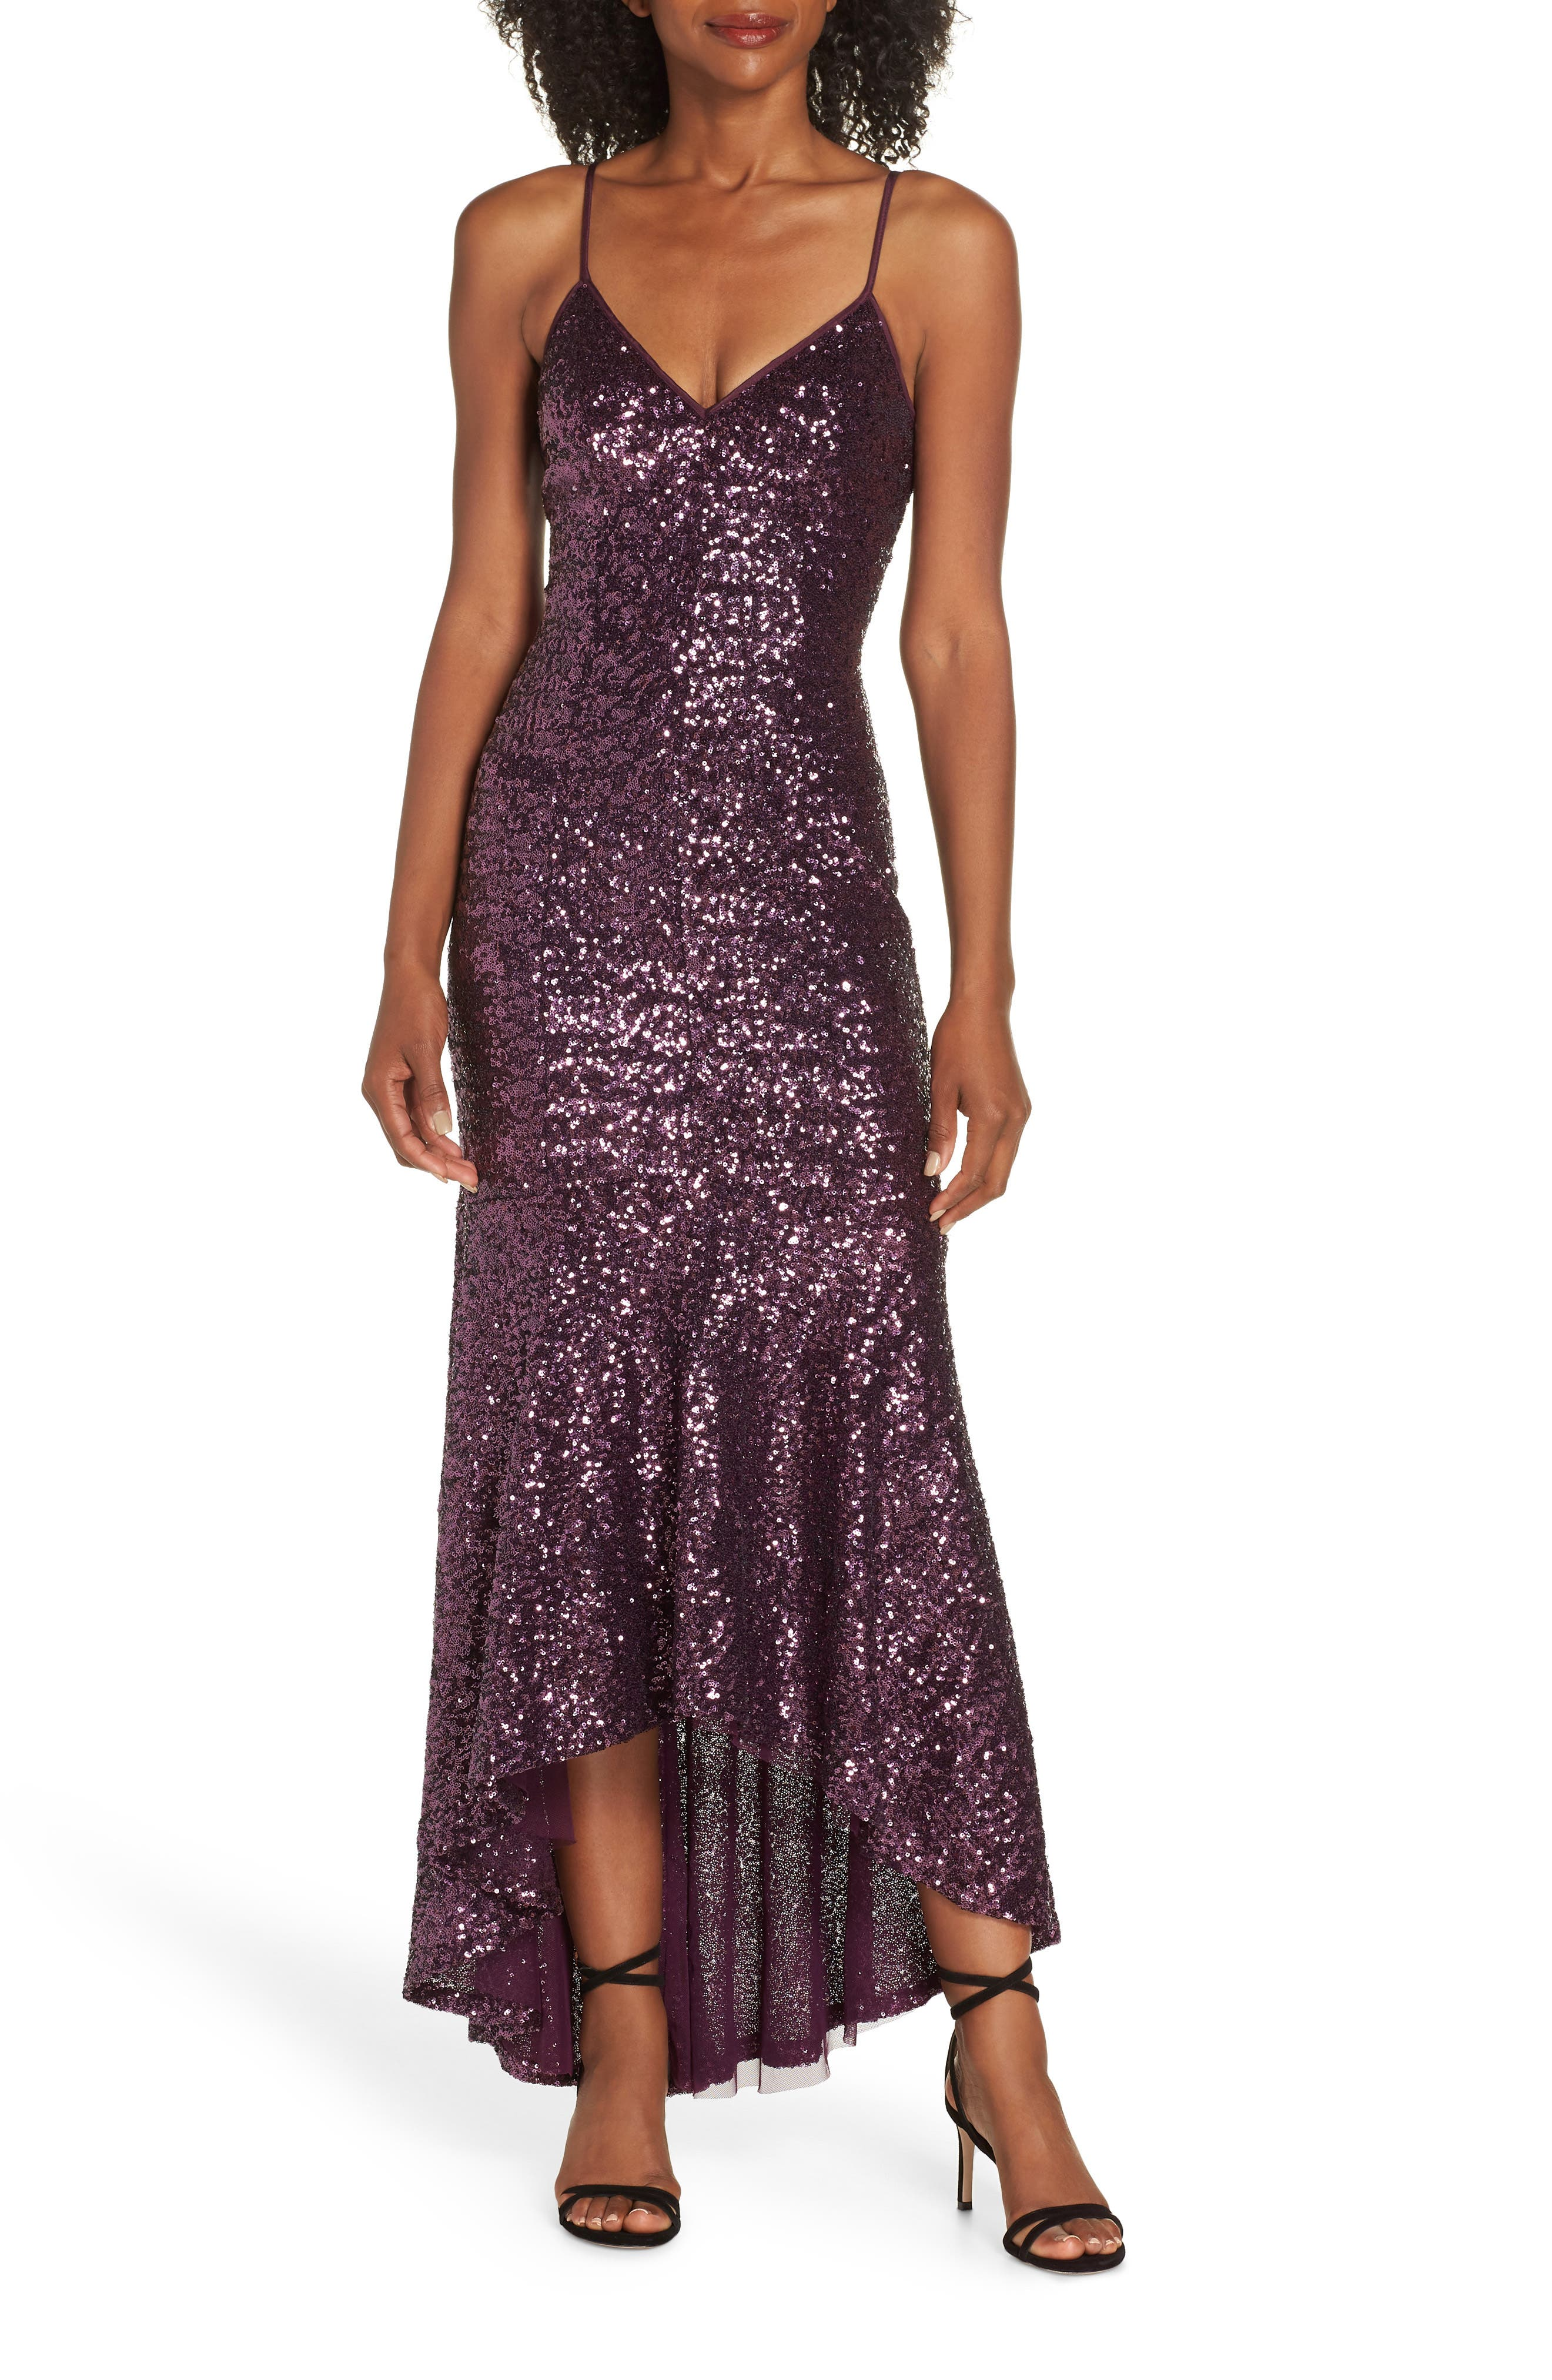 70s Prom, Formal, Evening, Party Dresses Womens Vince Camuto Highlow Sequin Gown $268.00 AT vintagedancer.com